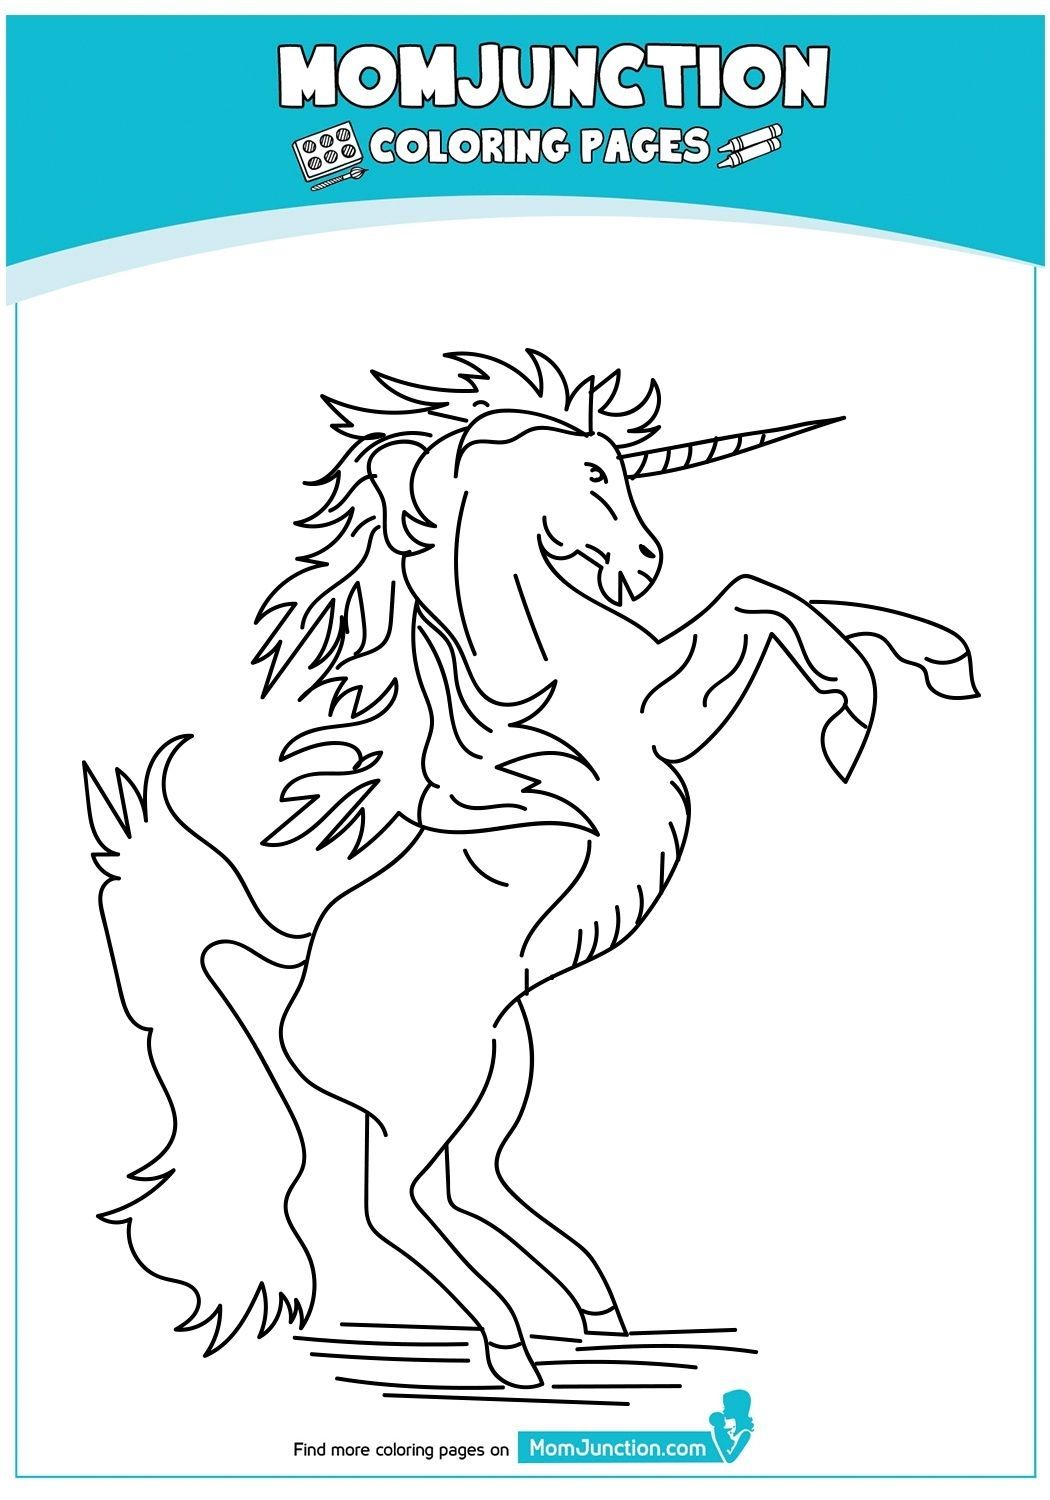 Momjunction Unicorn Coloring Pages Cute Unicorn Coloring Pages Momjunction Momjunction Unicorn Col Unicorn Coloring Pages Coloring Pages Horse Coloring Pages